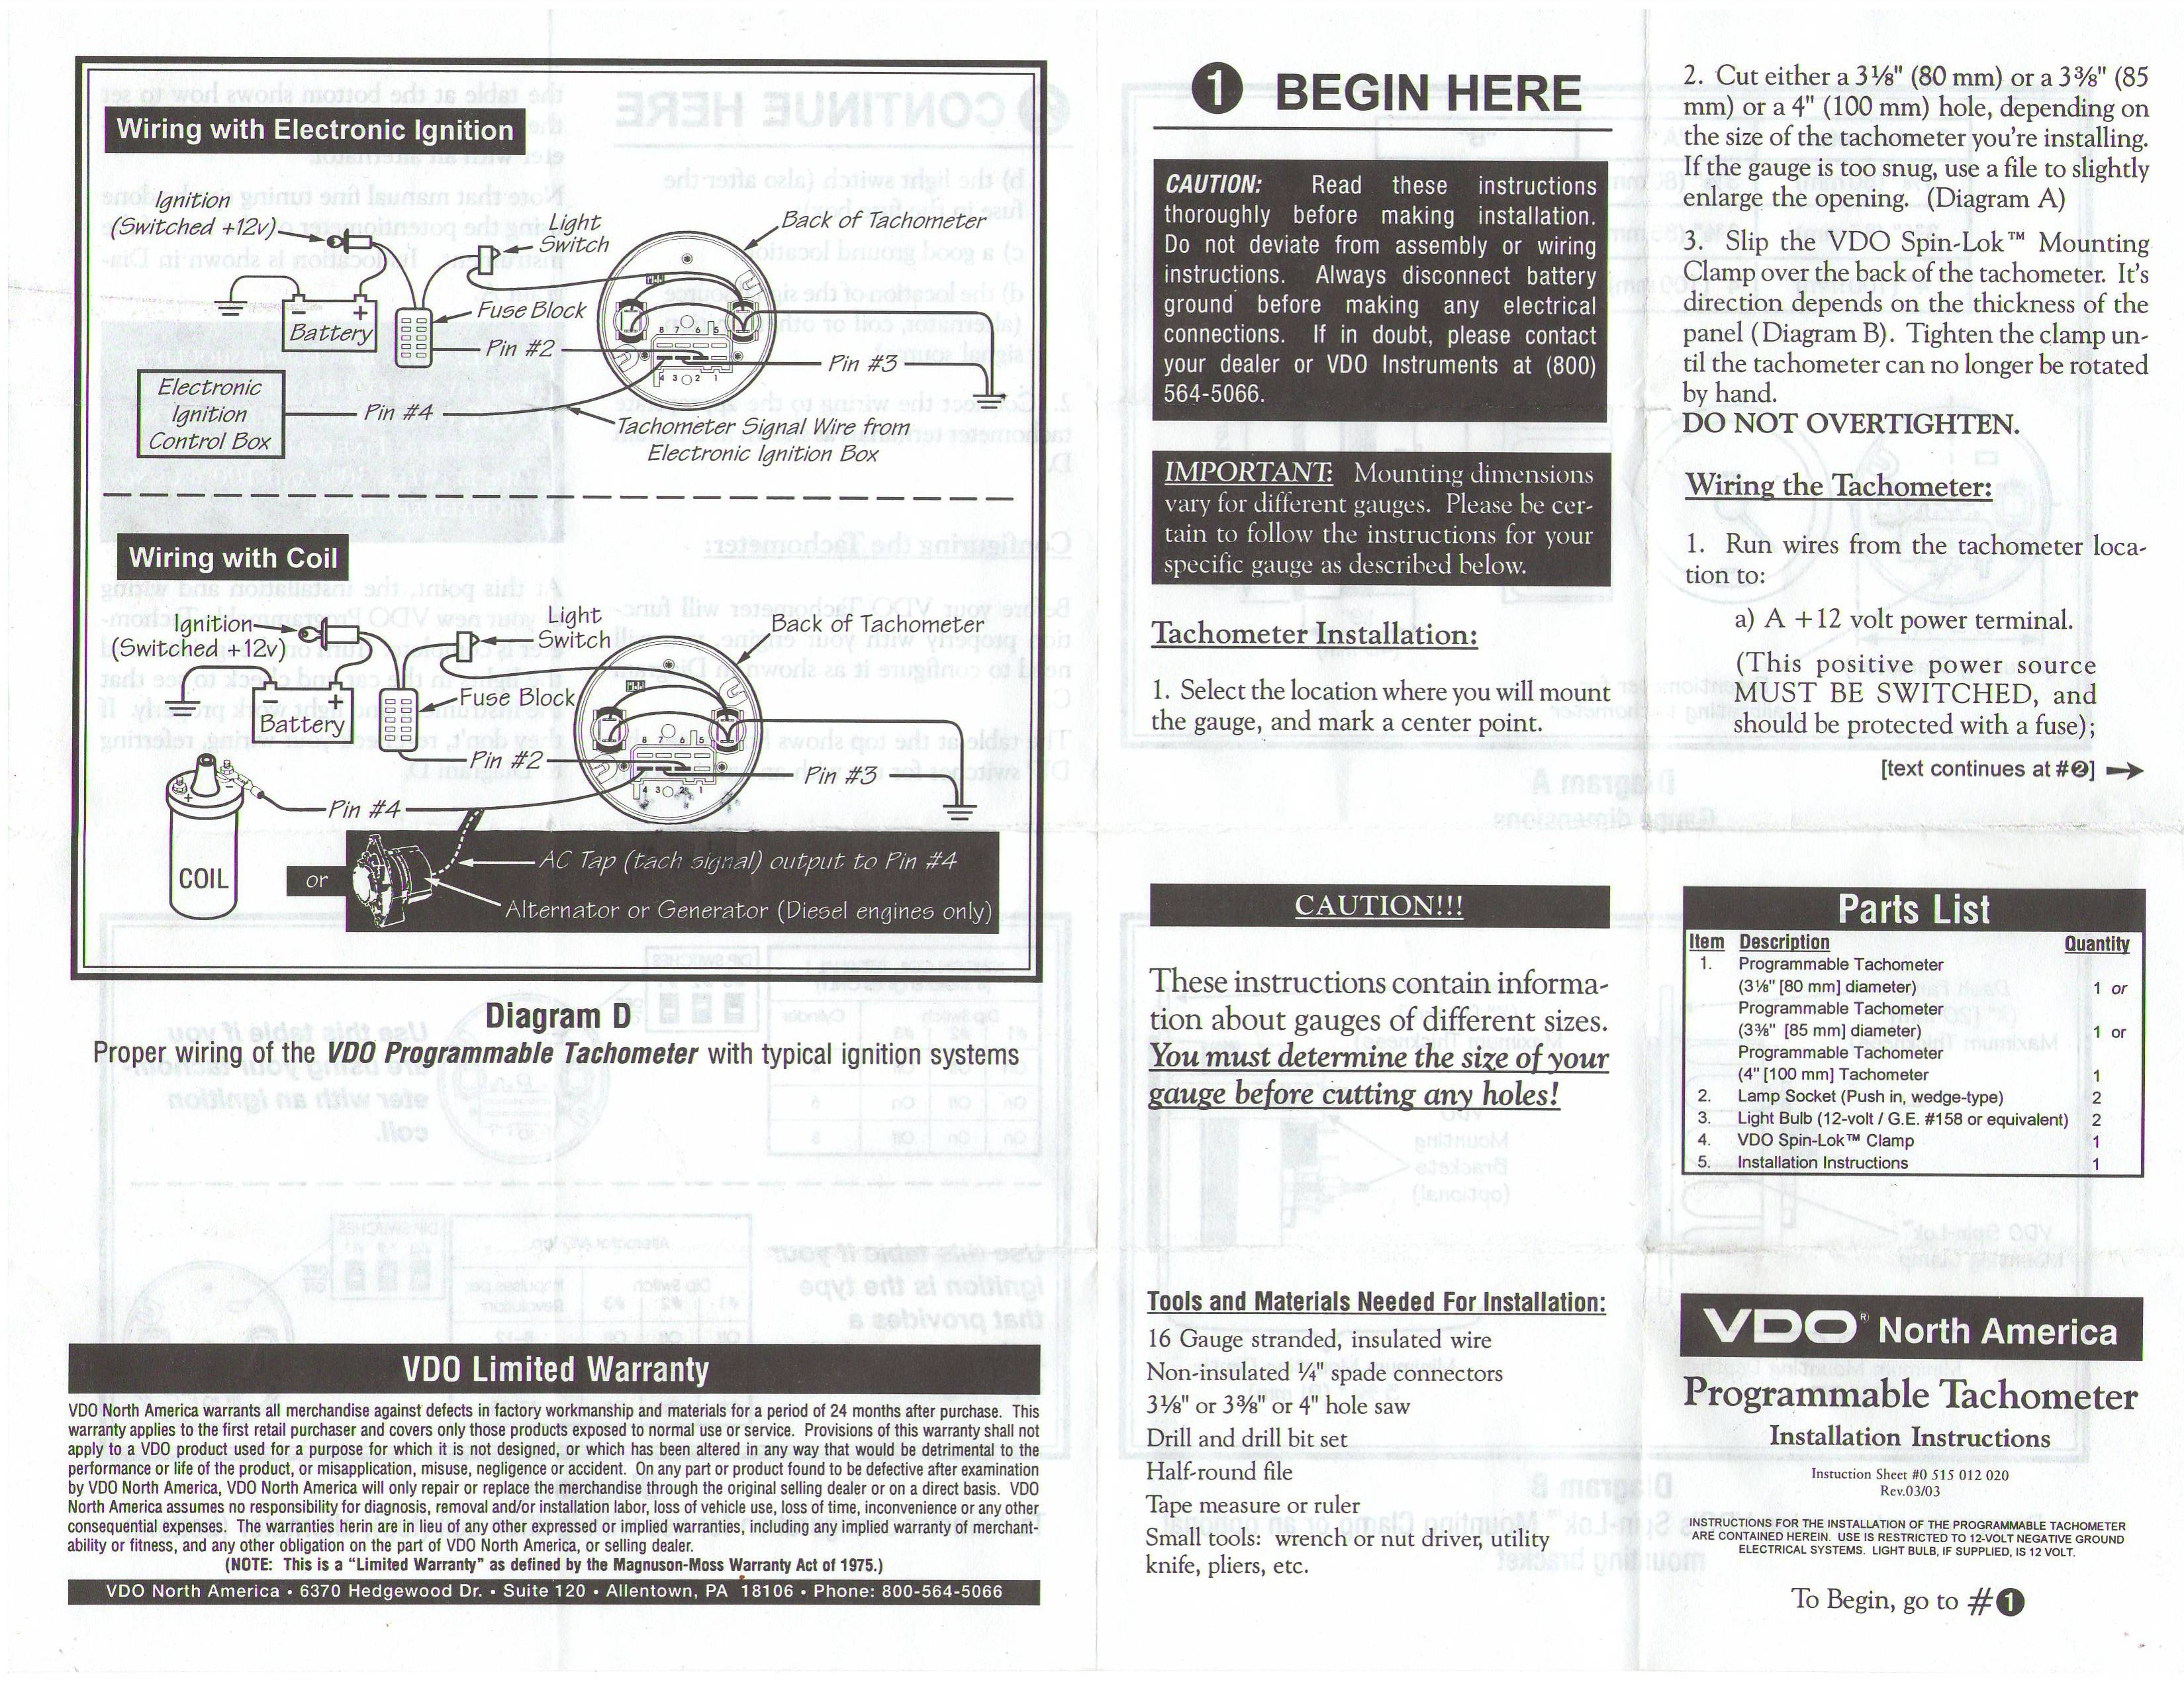 Vw Vdo Tach Wiring Diagram Download Diagrams Boat Tachometer Thesamba Com Programmable Instructions Mercury Outboard Marine